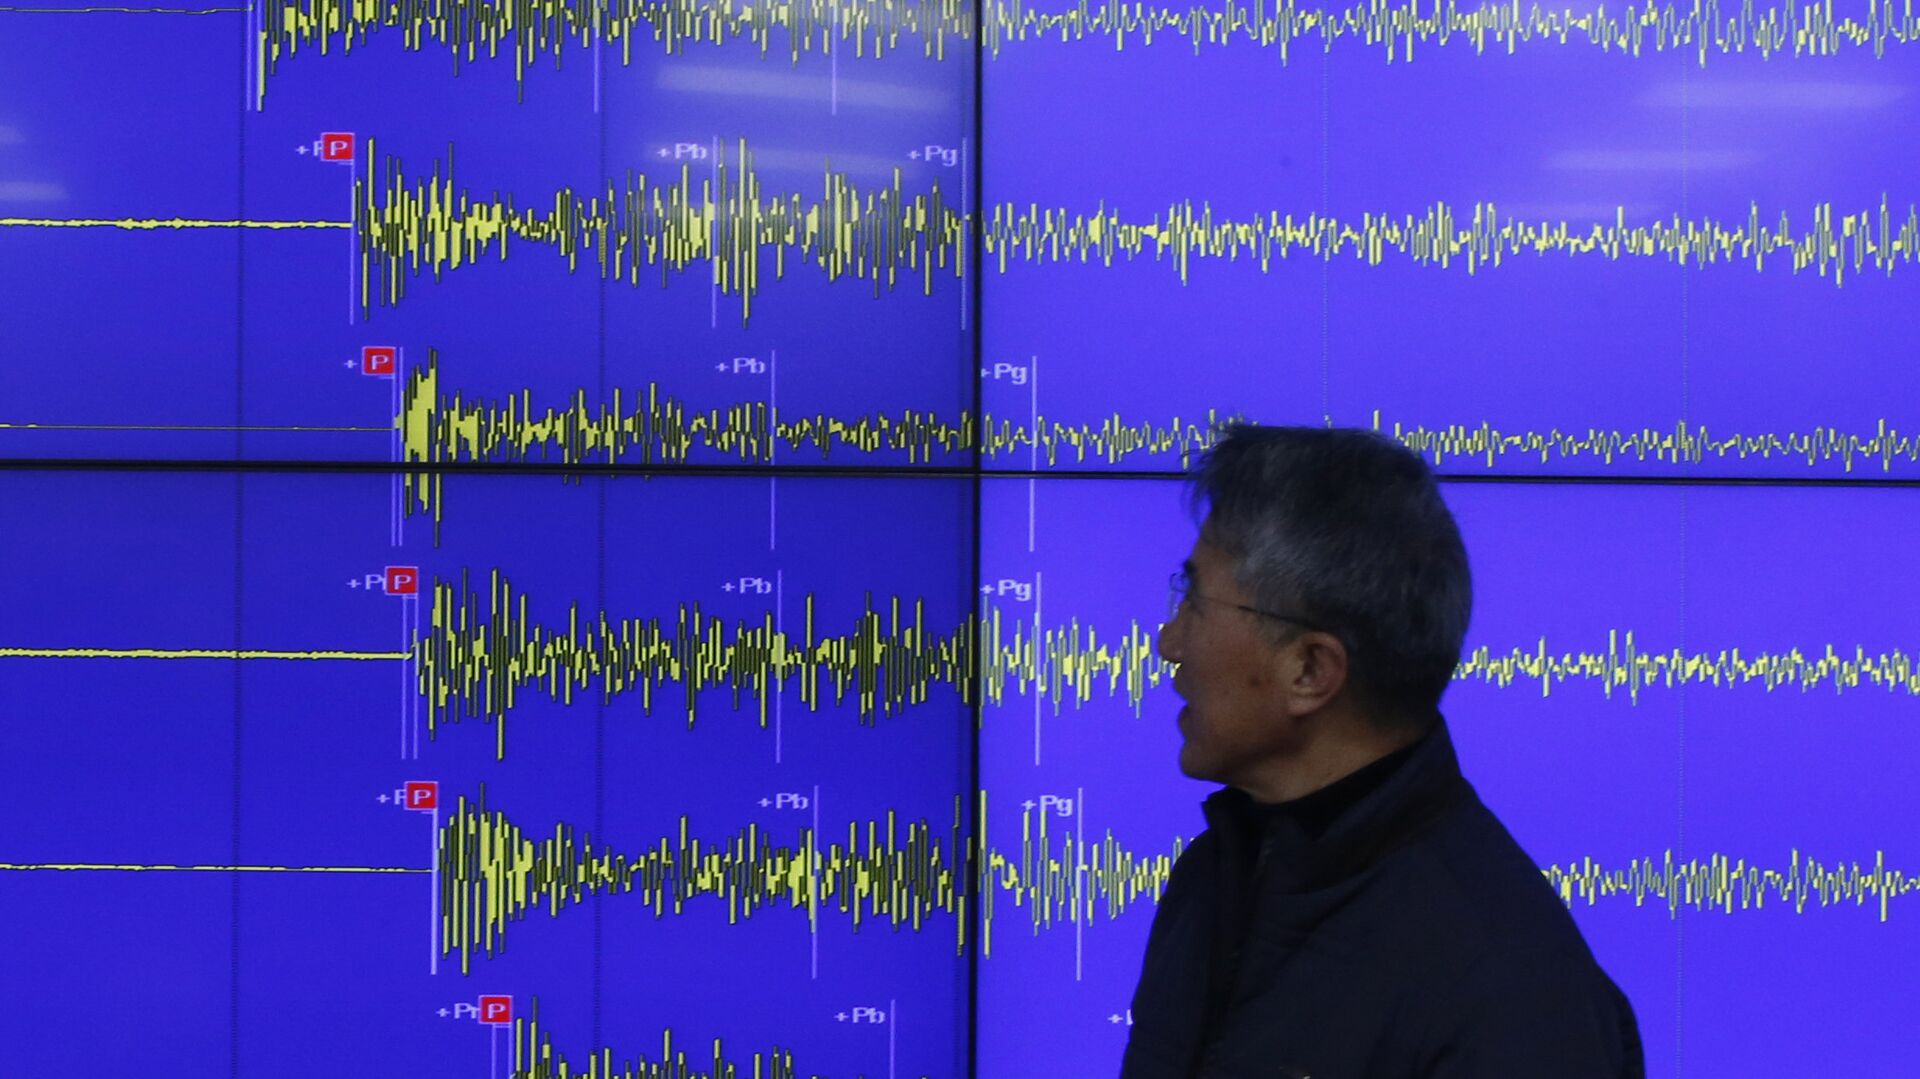 Earthquake and Volcano of the Korea Meteorological Administration Director General Yun Won-tae stands in front of a screen showing seismic waves that were measured in South Korea, in Seoul Wednesday, Jan. 6, 2016 - Sputnik Mundo, 1920, 12.07.2021